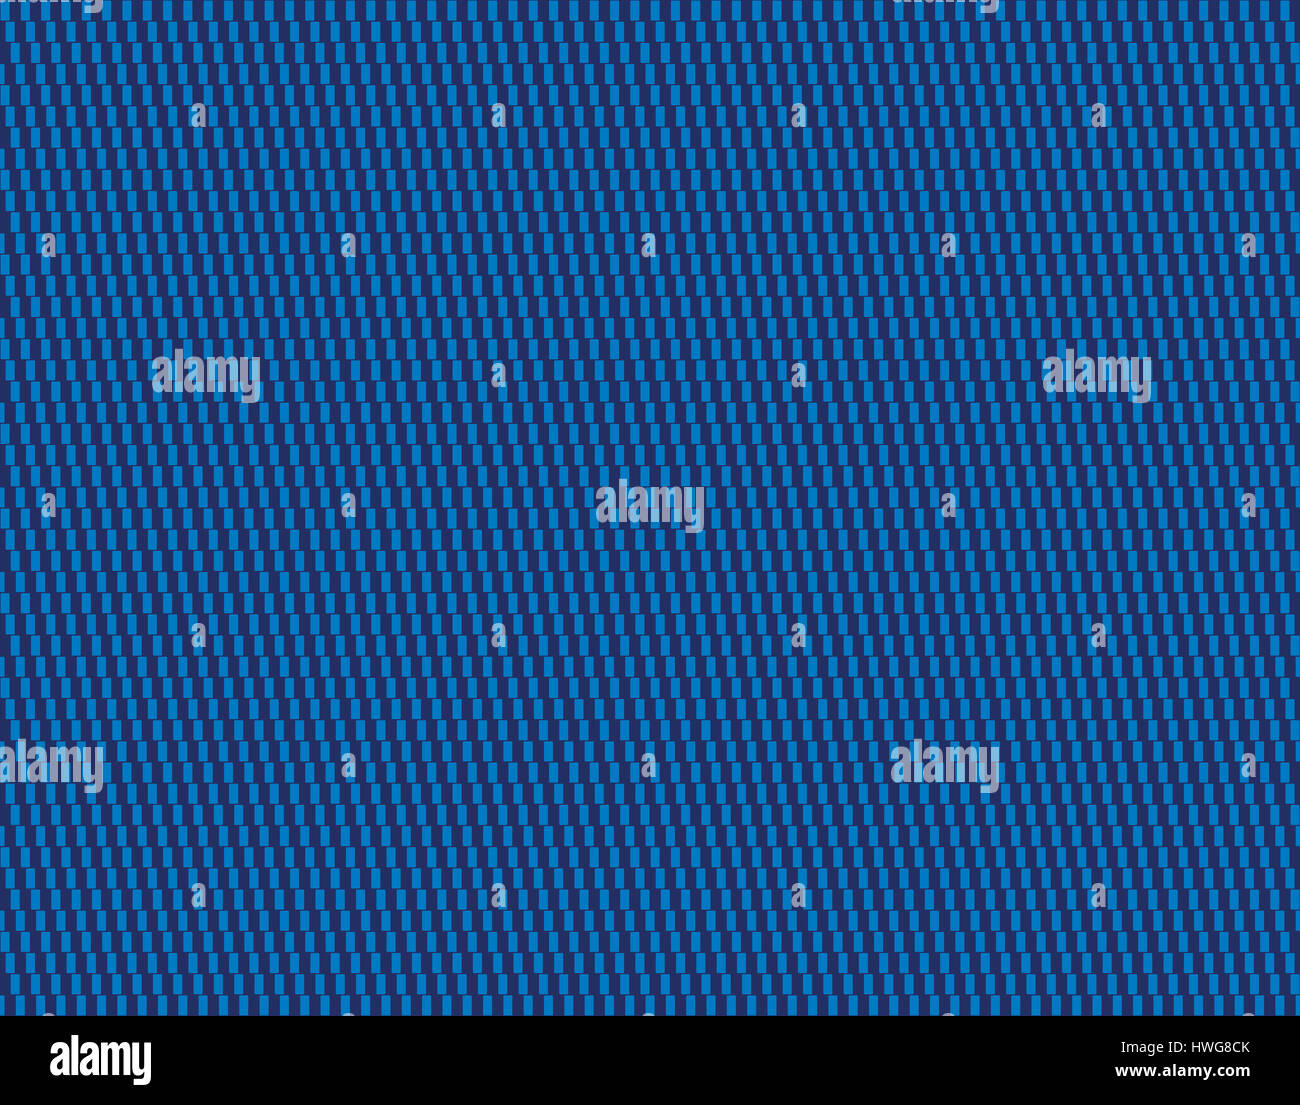 Blue textile pattern background. Cafe wall geometrical illusion tile. Seamless in all directions. Lines formed by - Stock Image